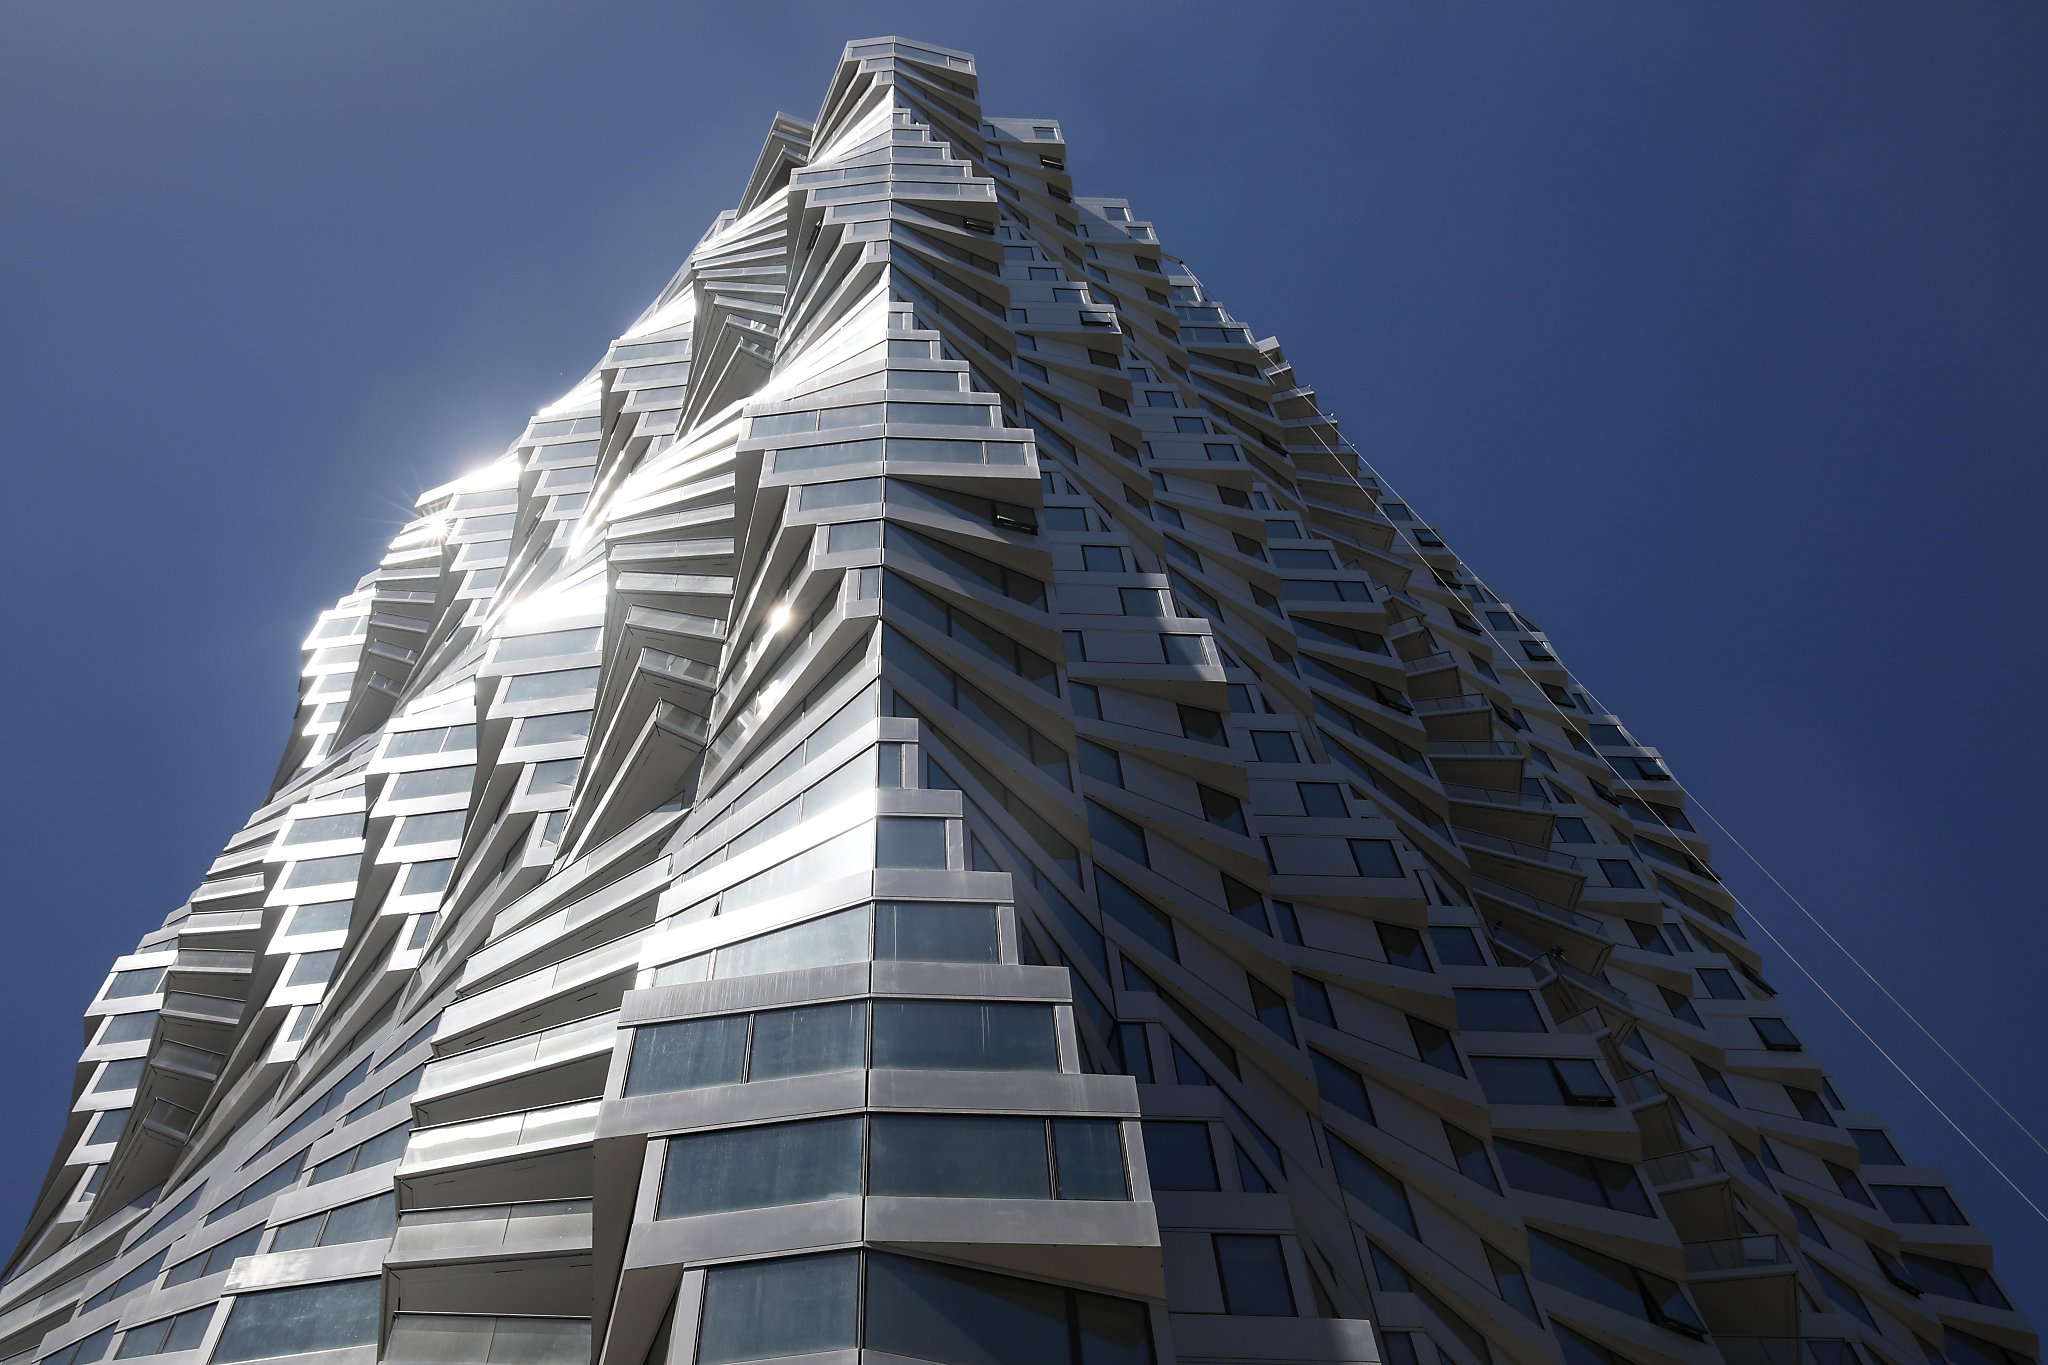 San Francisco's pandemic-battered condo market bounced back with a vengeance this spring, scoring its busiest three-month period in at least 16